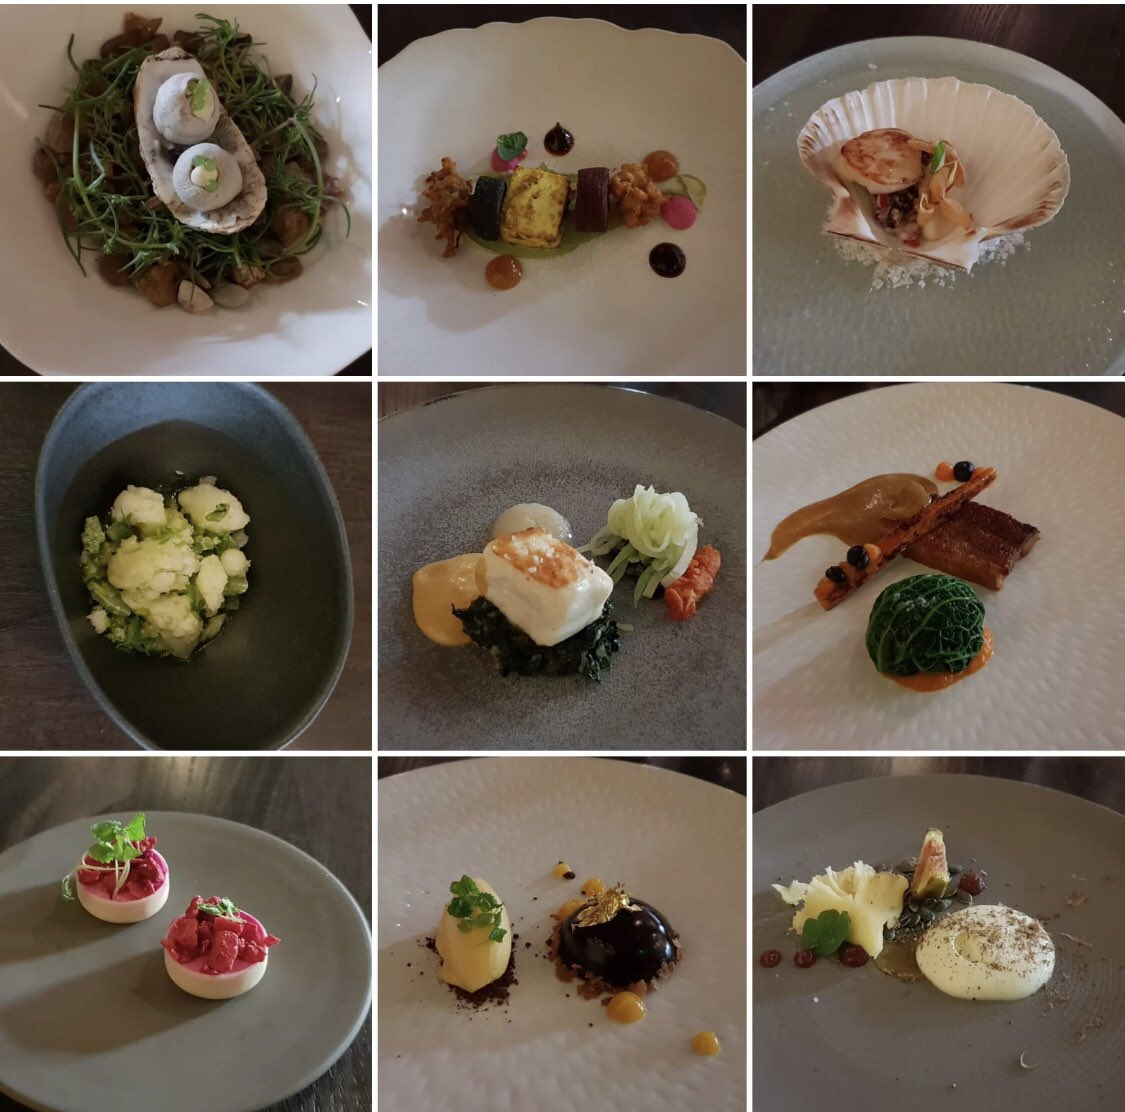 What can can I say, just tried the autumn taster menu @opheemtweets better than my first visit and that was impeccable! No @aktarislam tonight 😢,but the ship was captained to pure brilliance by @chefwithers! #CullinaryExcellence #InnovativeFlavourCombinations